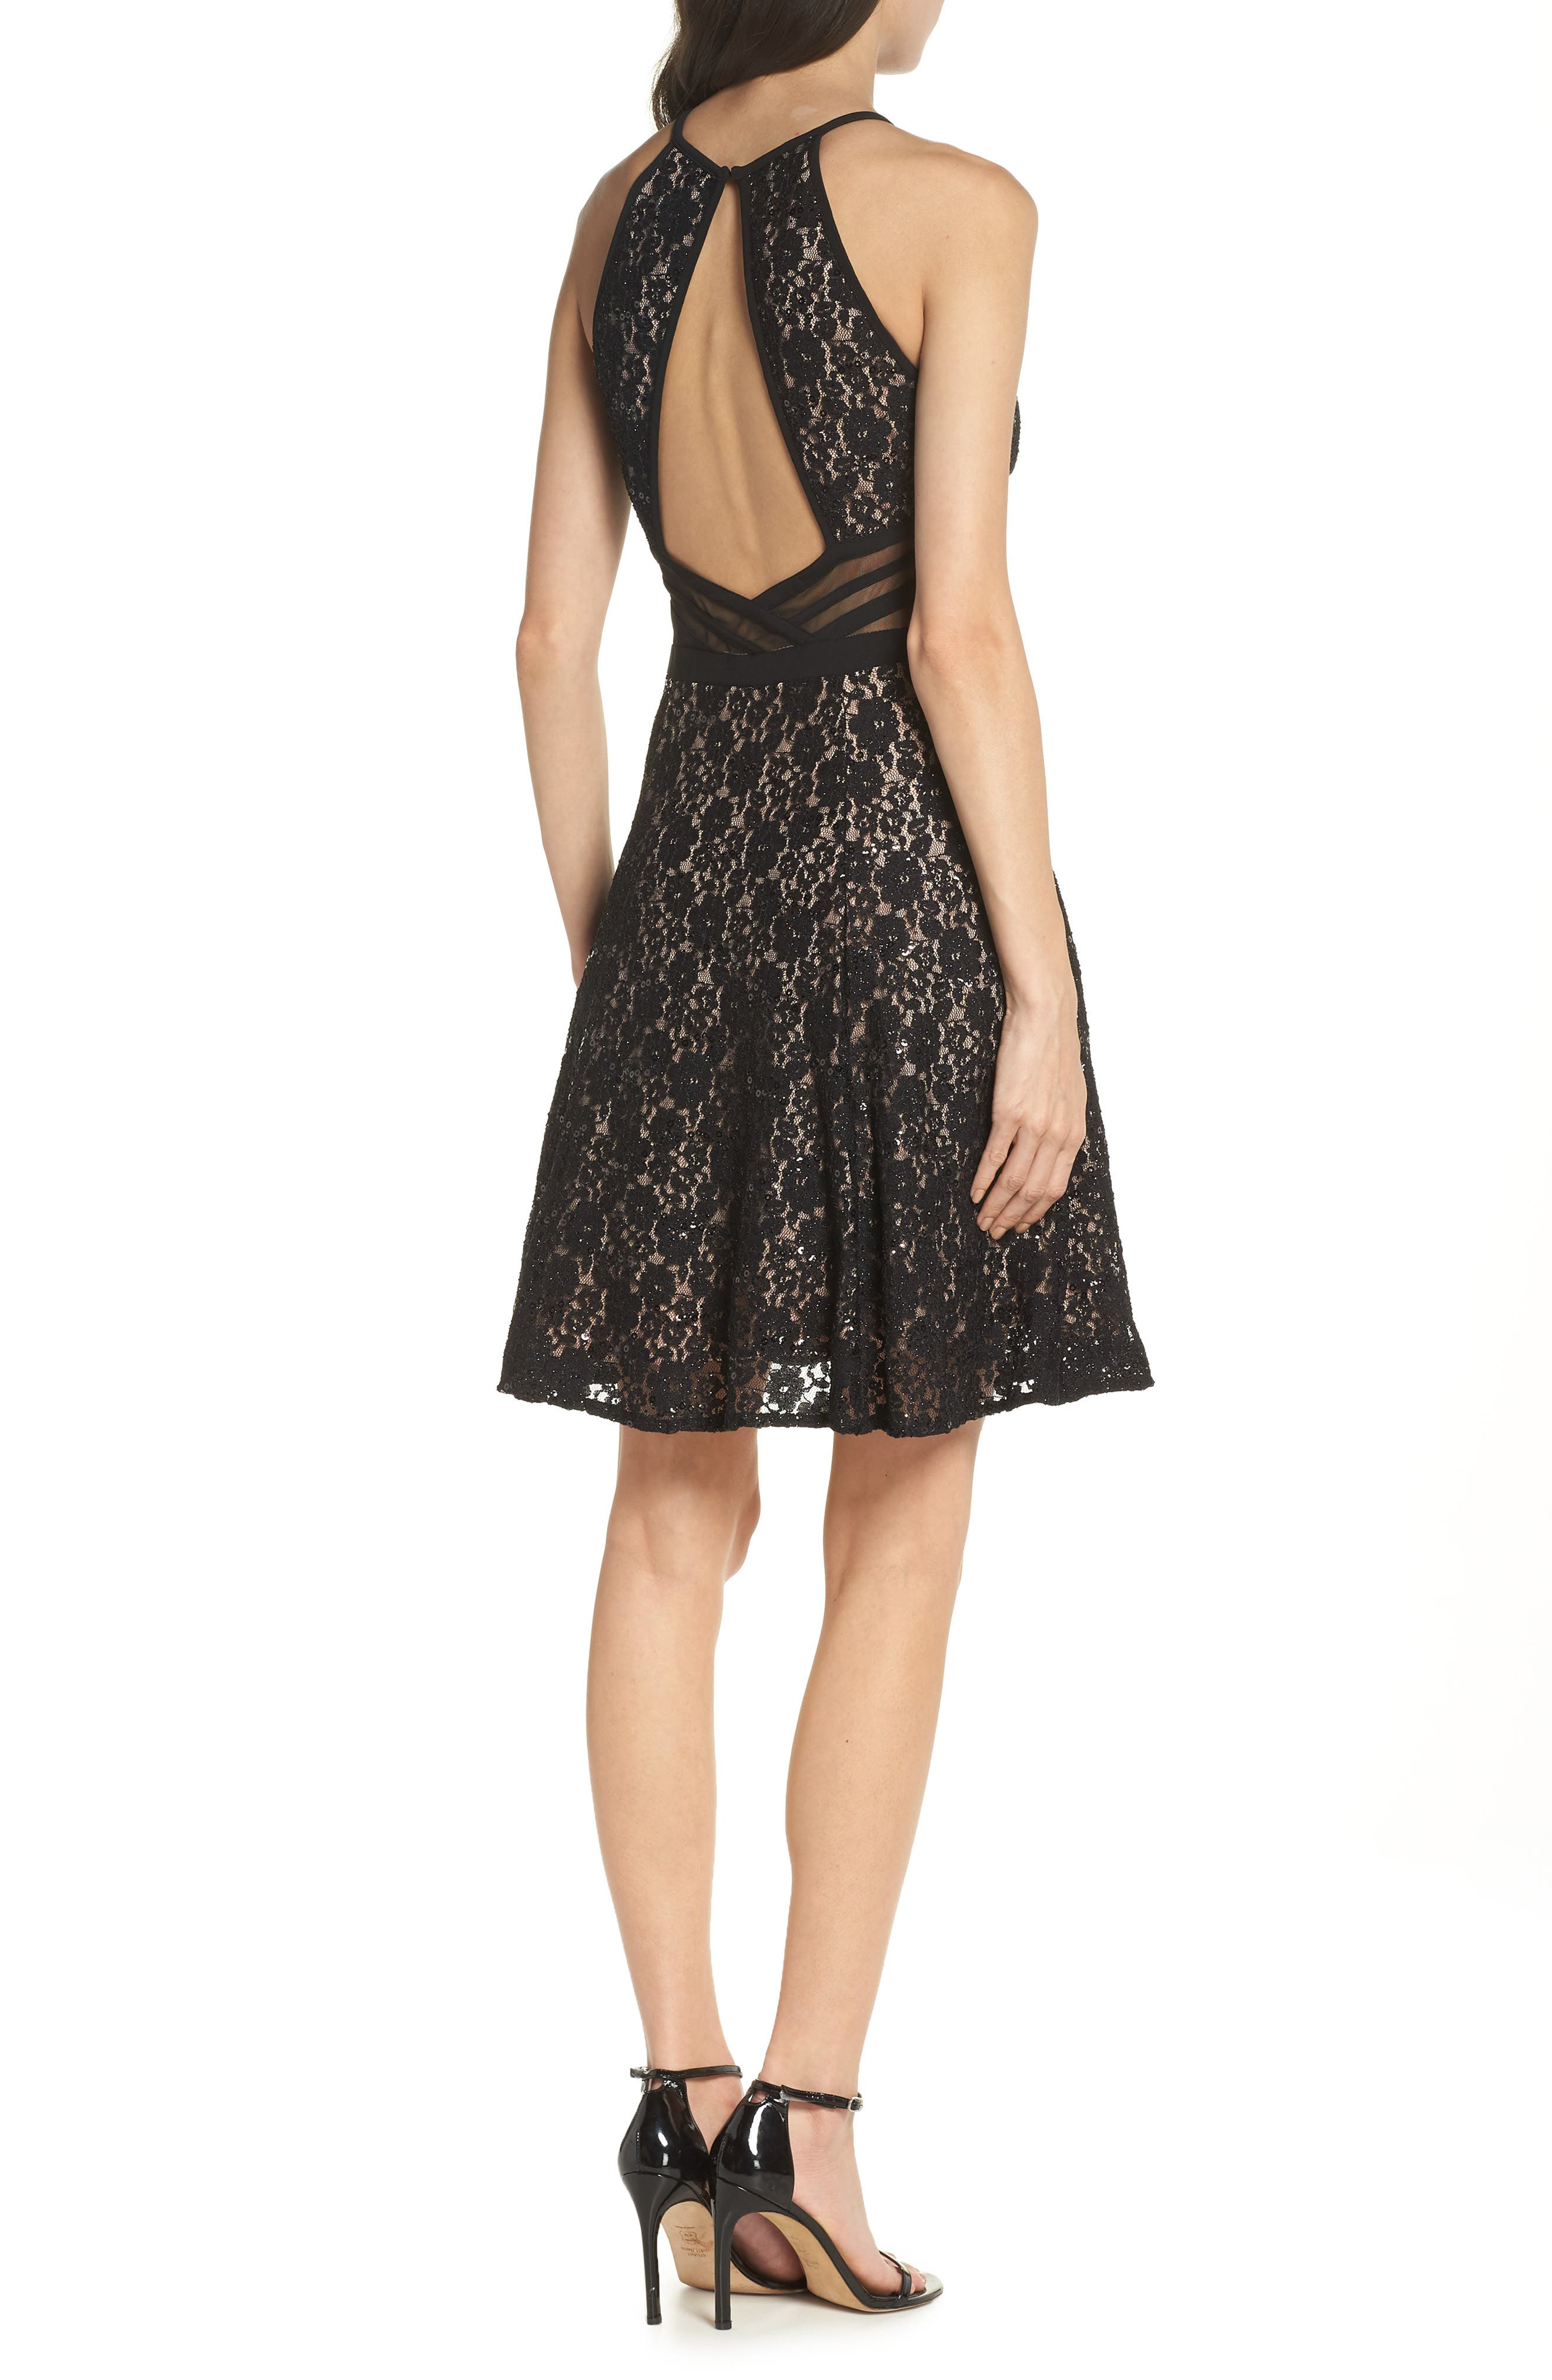 MORGAN & CO.,                             Sheer Inset Lace Fit & Flare Dress,                             Alternate thumbnail 2, color,                             BLACK/ NUDE